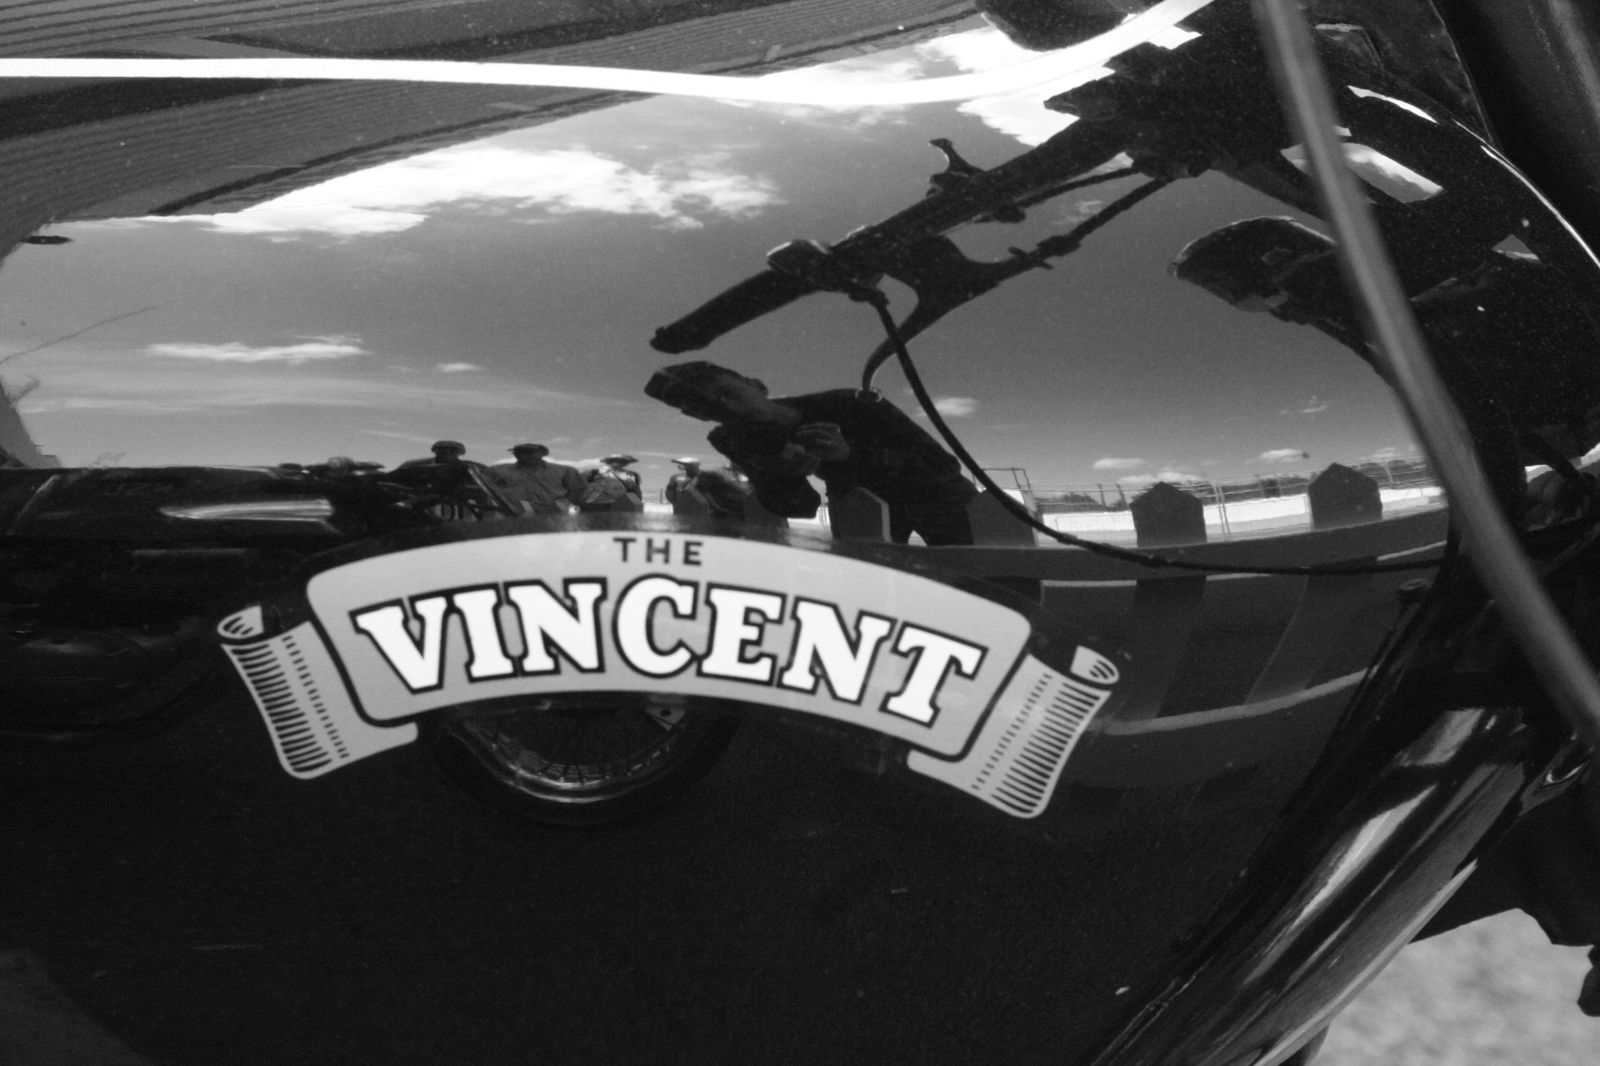 MotoLegende2009 60 vincent.jpg